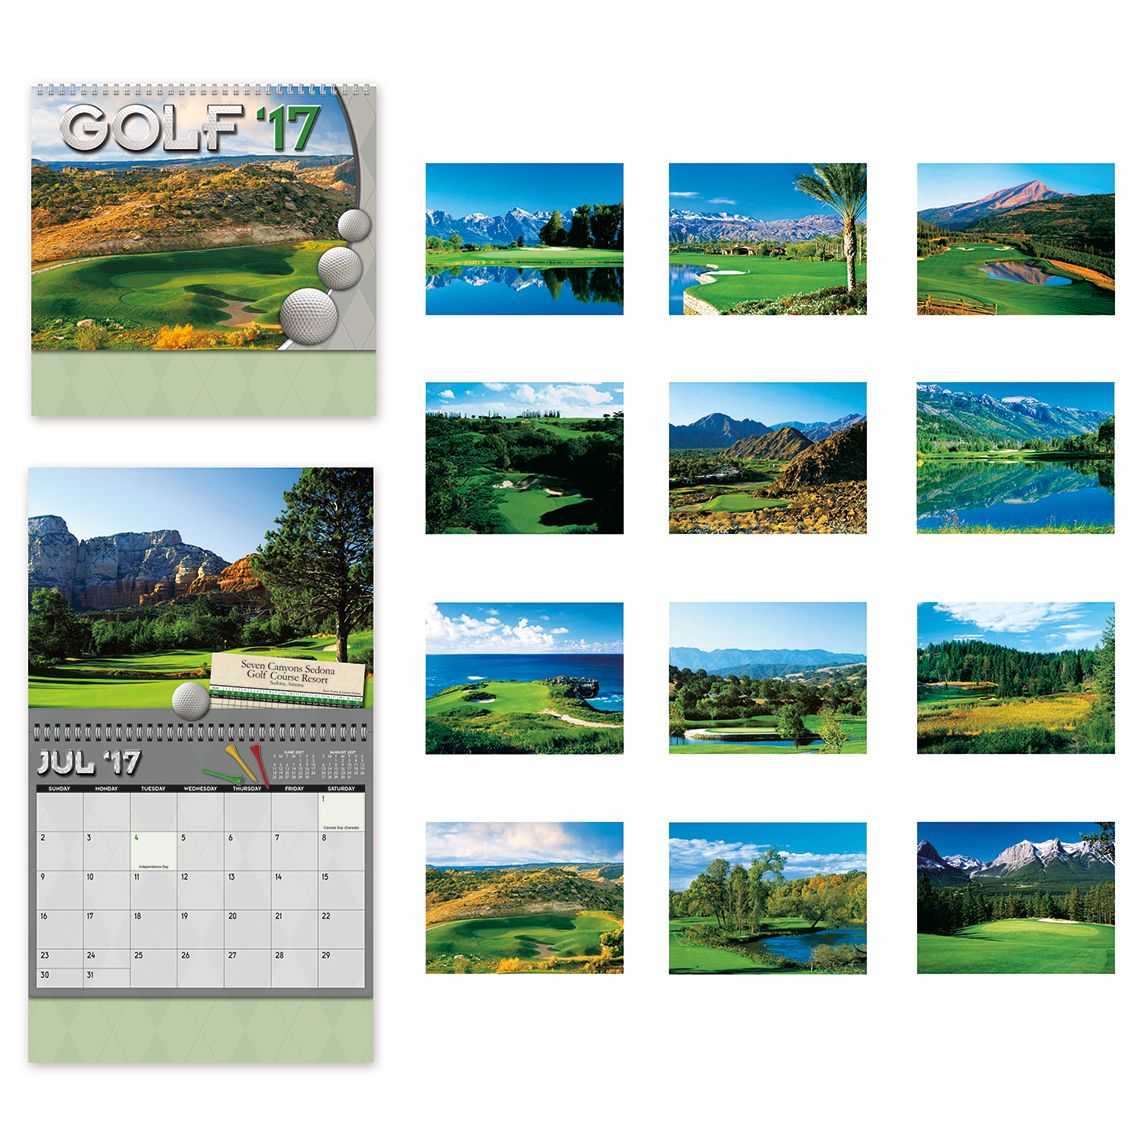 Custom printed 2017 wall calendars with pictures of golf courses.